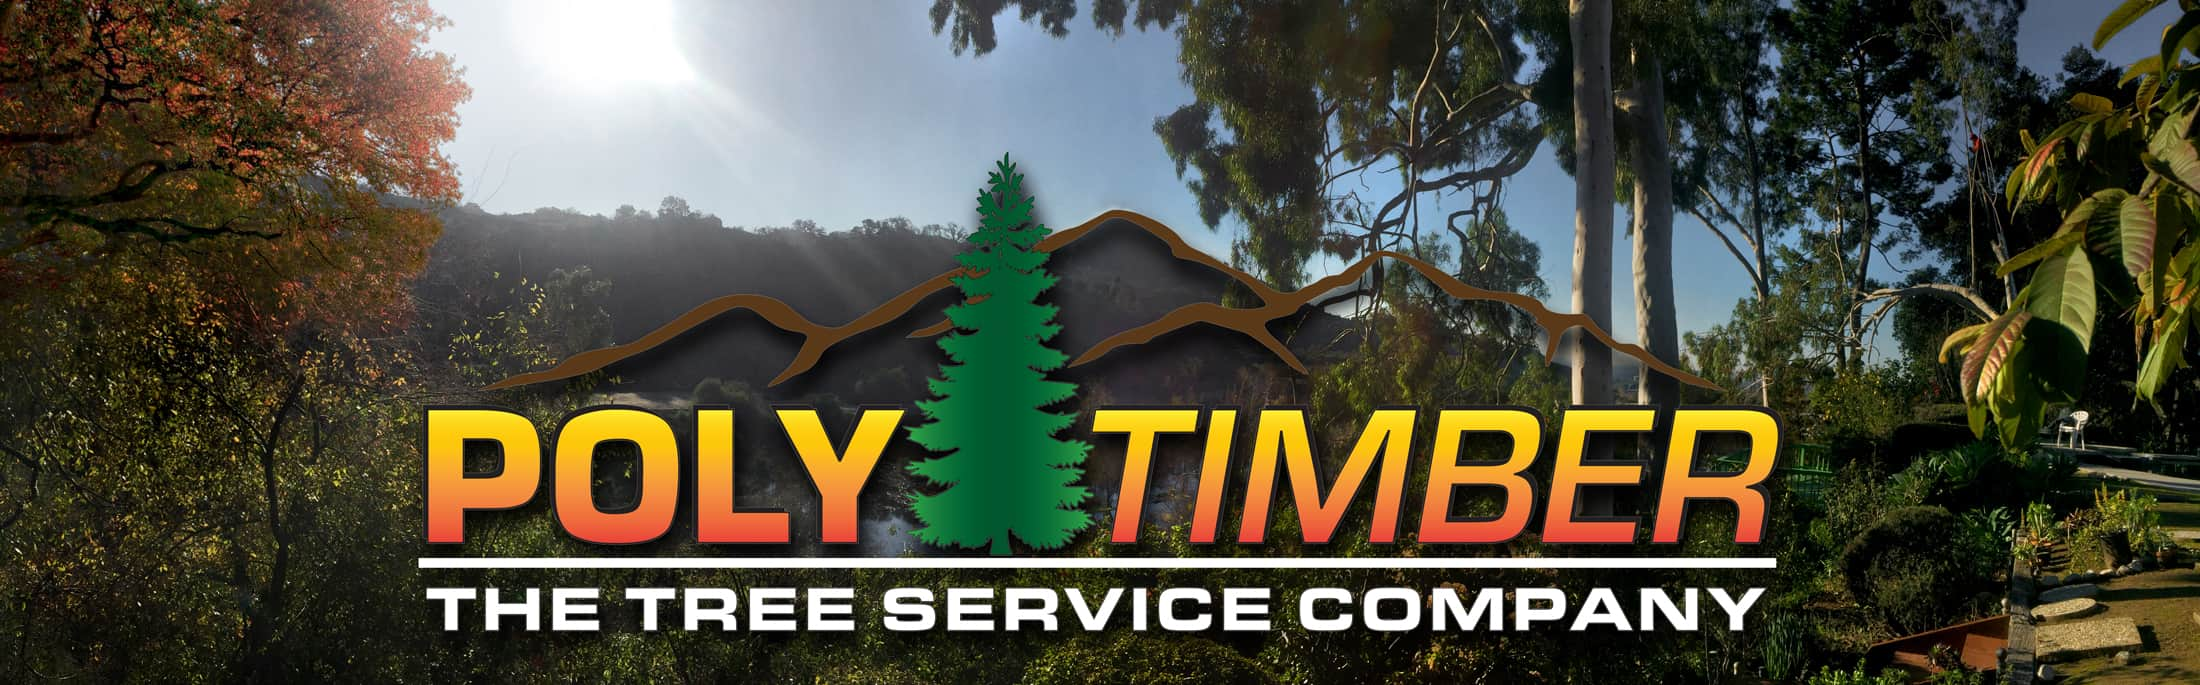 Poly Timber Tree Service